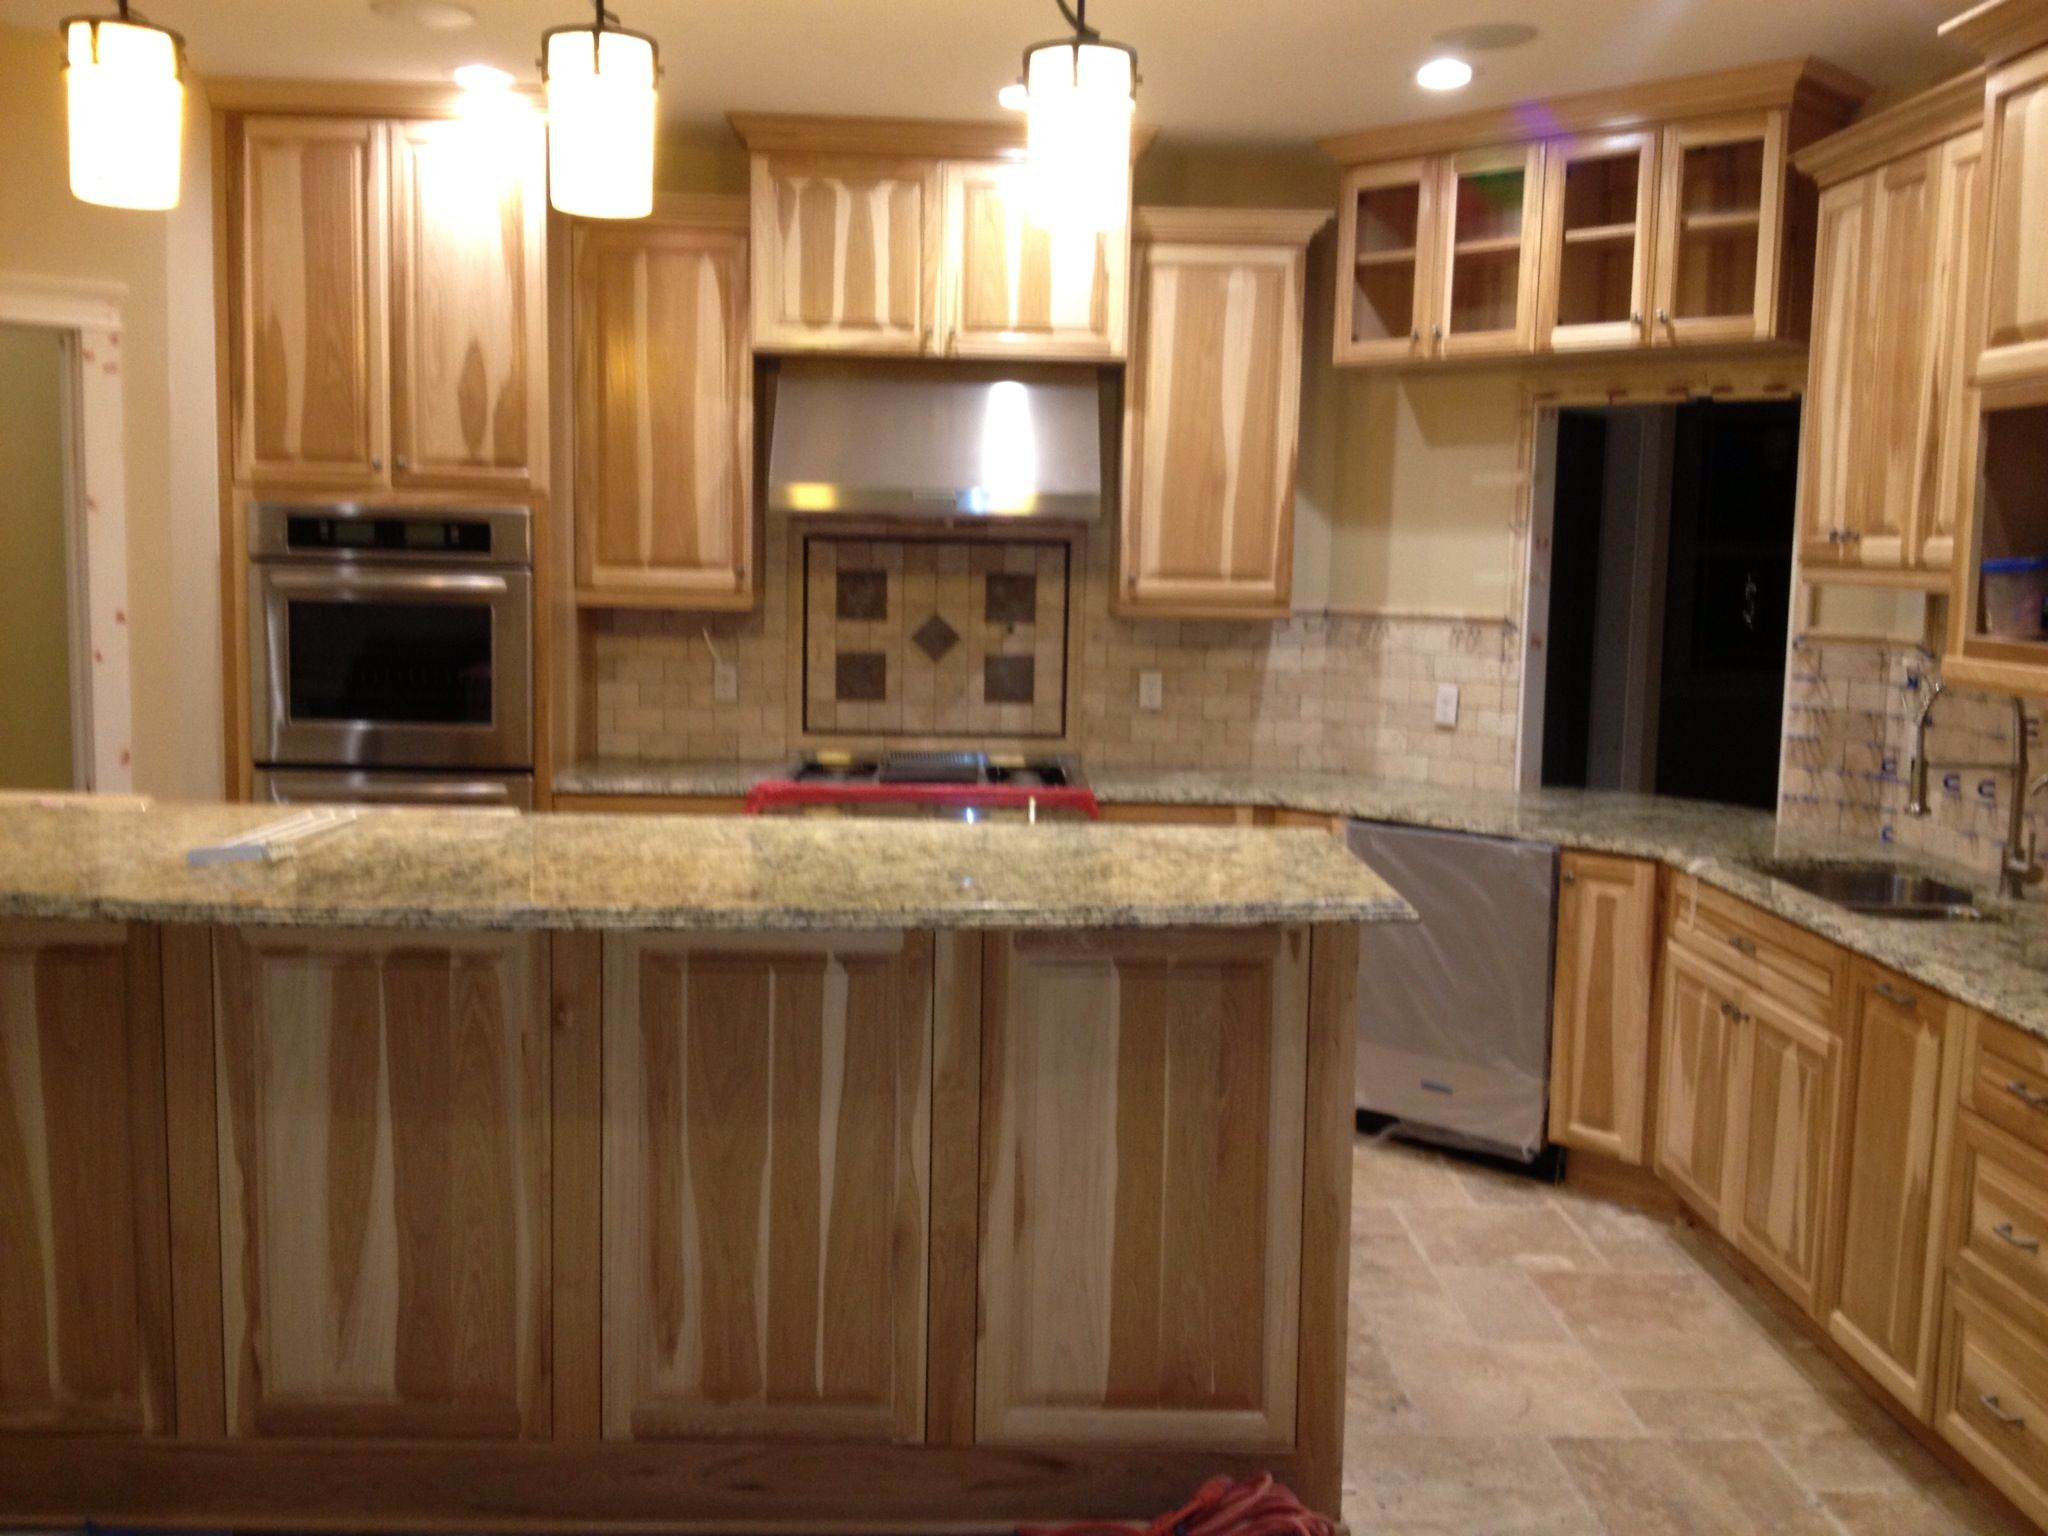 kitchen ideas kitchen cabinet countertop Kitchen with Hickory cabinets and travertine backsplash With granite countertops